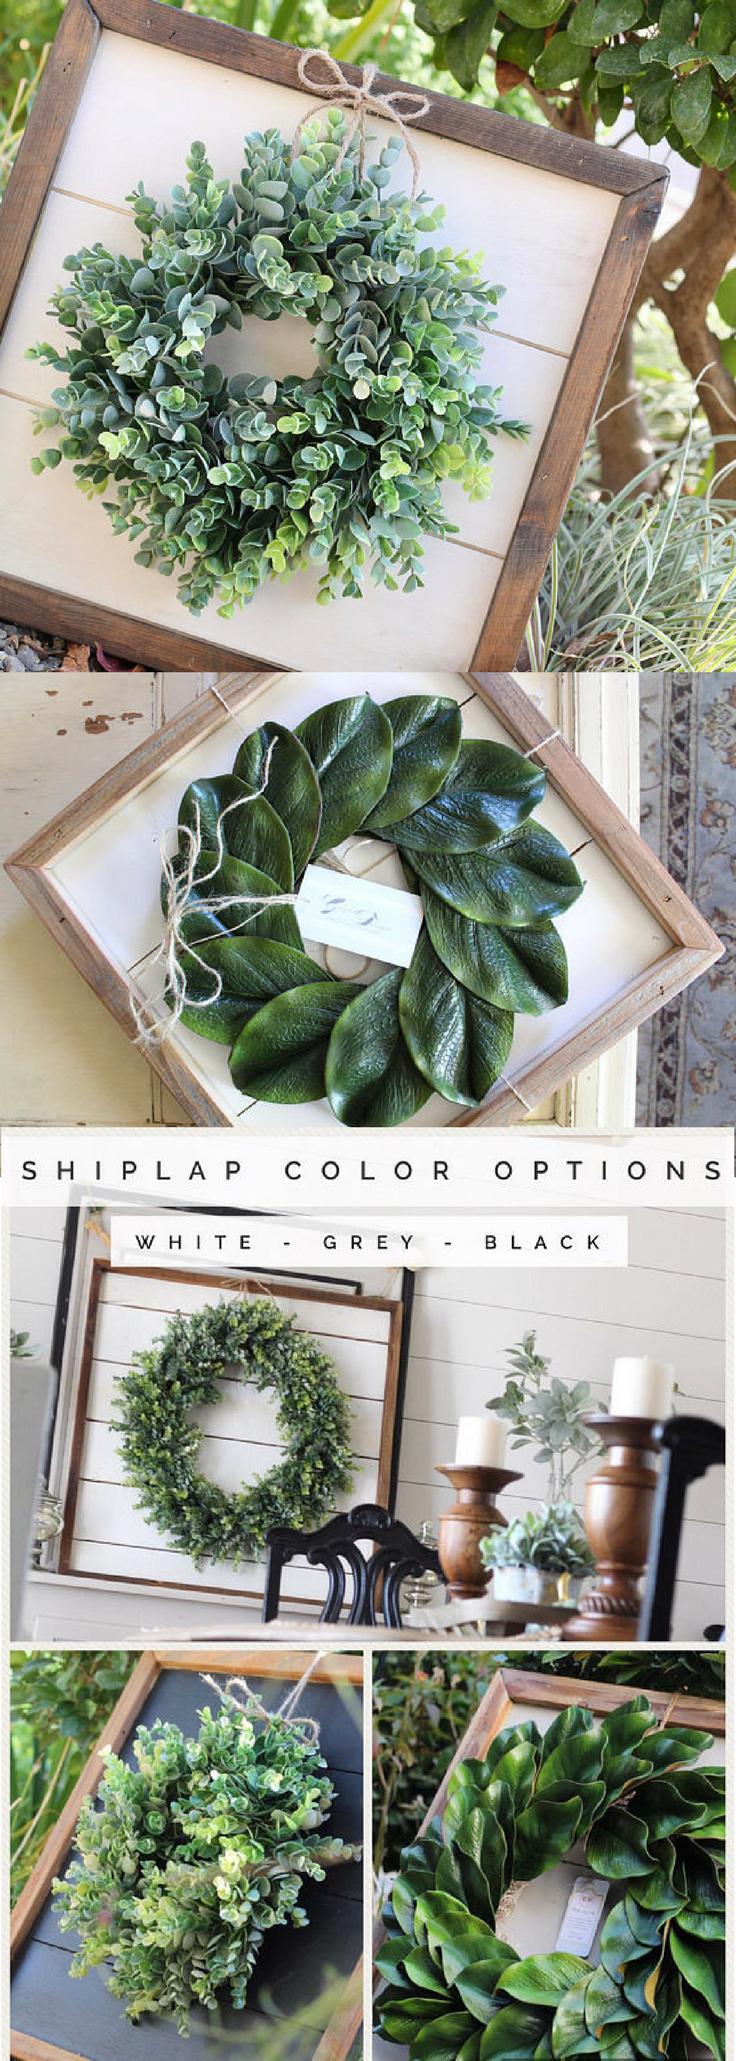 Shiplap Art & Mini Eucalyptus OR Magnolia Wreath - Small 15x15 - Reclaimed Wood - Handmade - Farmhouse - Home Decor - Custom Pieces - Spring - Living Room - Style - Kitchen - Modern - Joanna Gaines - Rustic - Country - Vintage - Ideas #ad #successfulhomed #VeryCoolRetroHomeDecorTurquoise